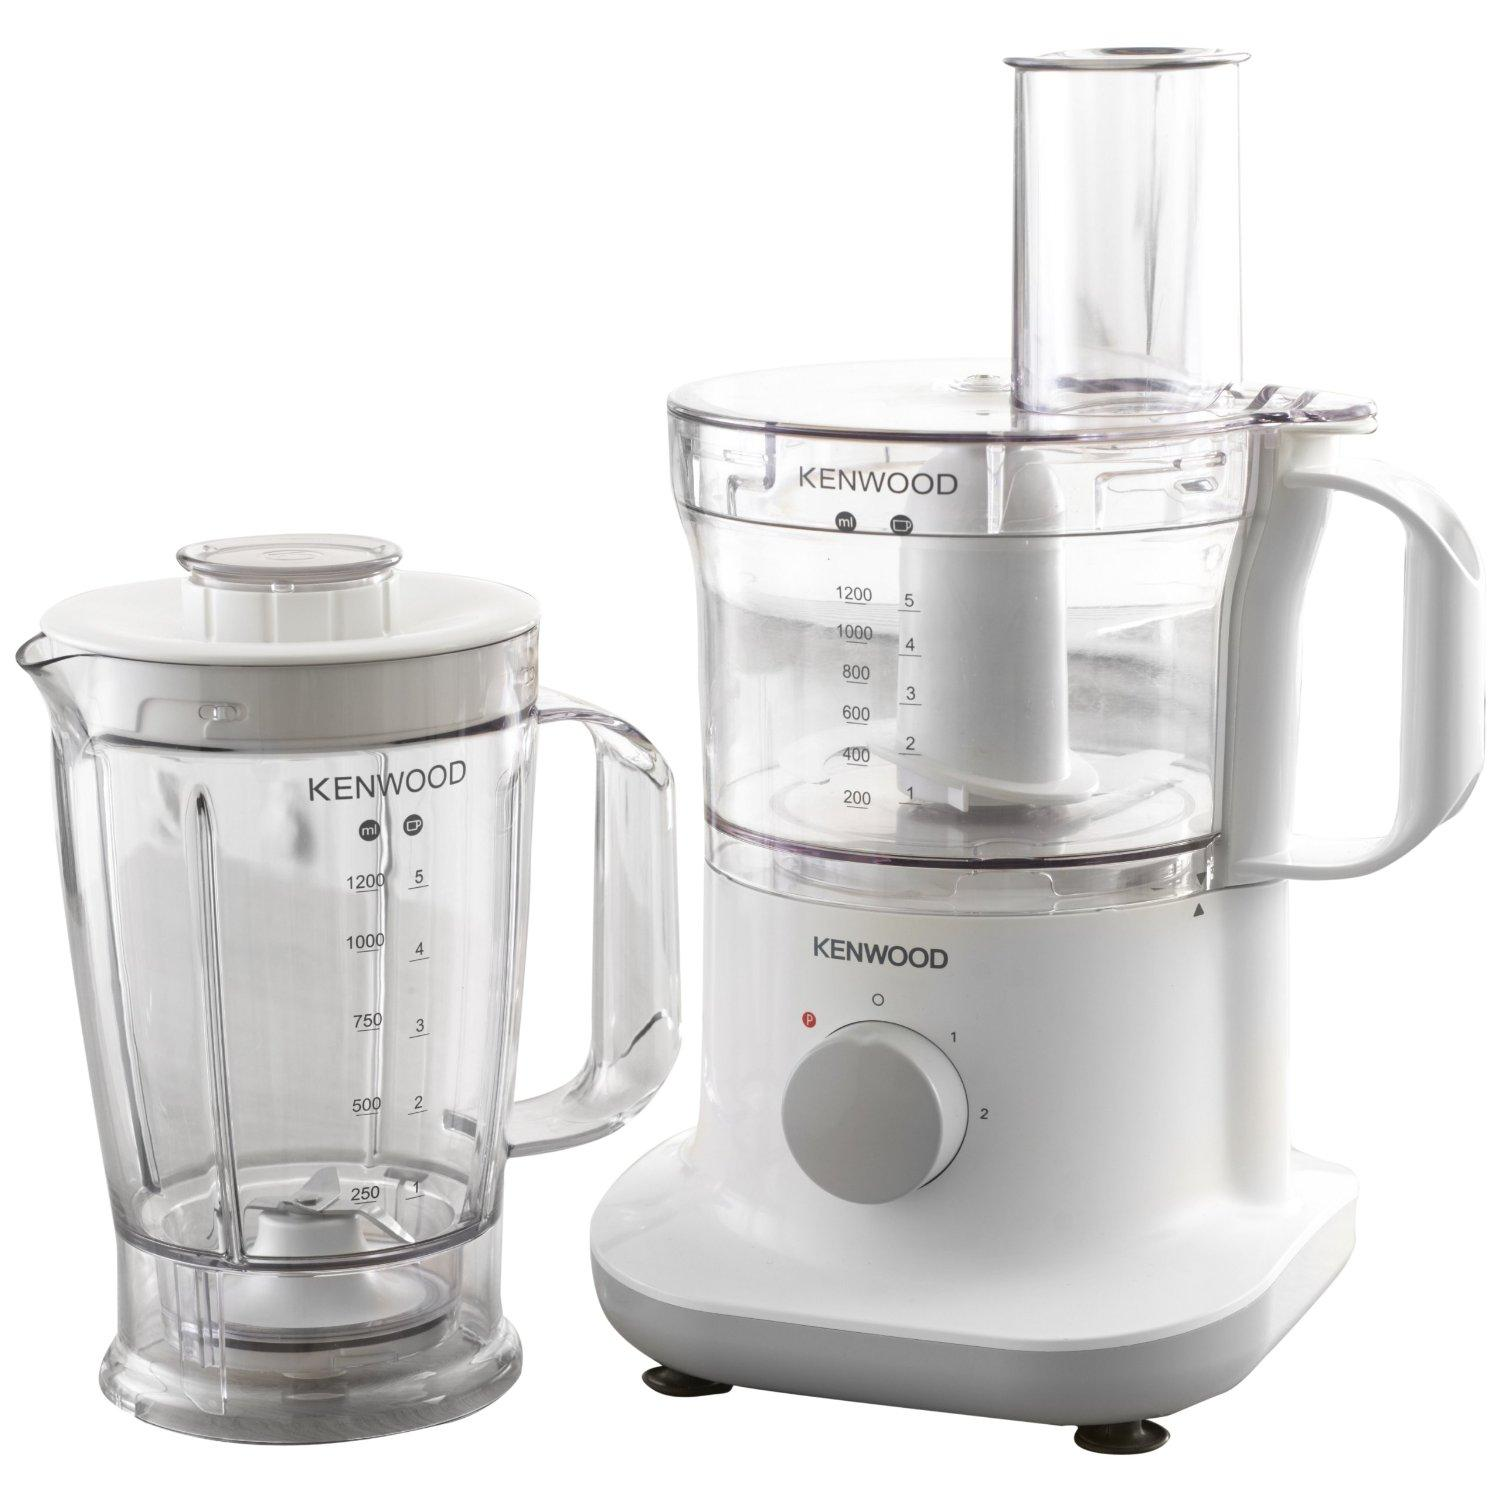 Kenwood - FPP230 - Robot Multifonctions Compact True 750 W